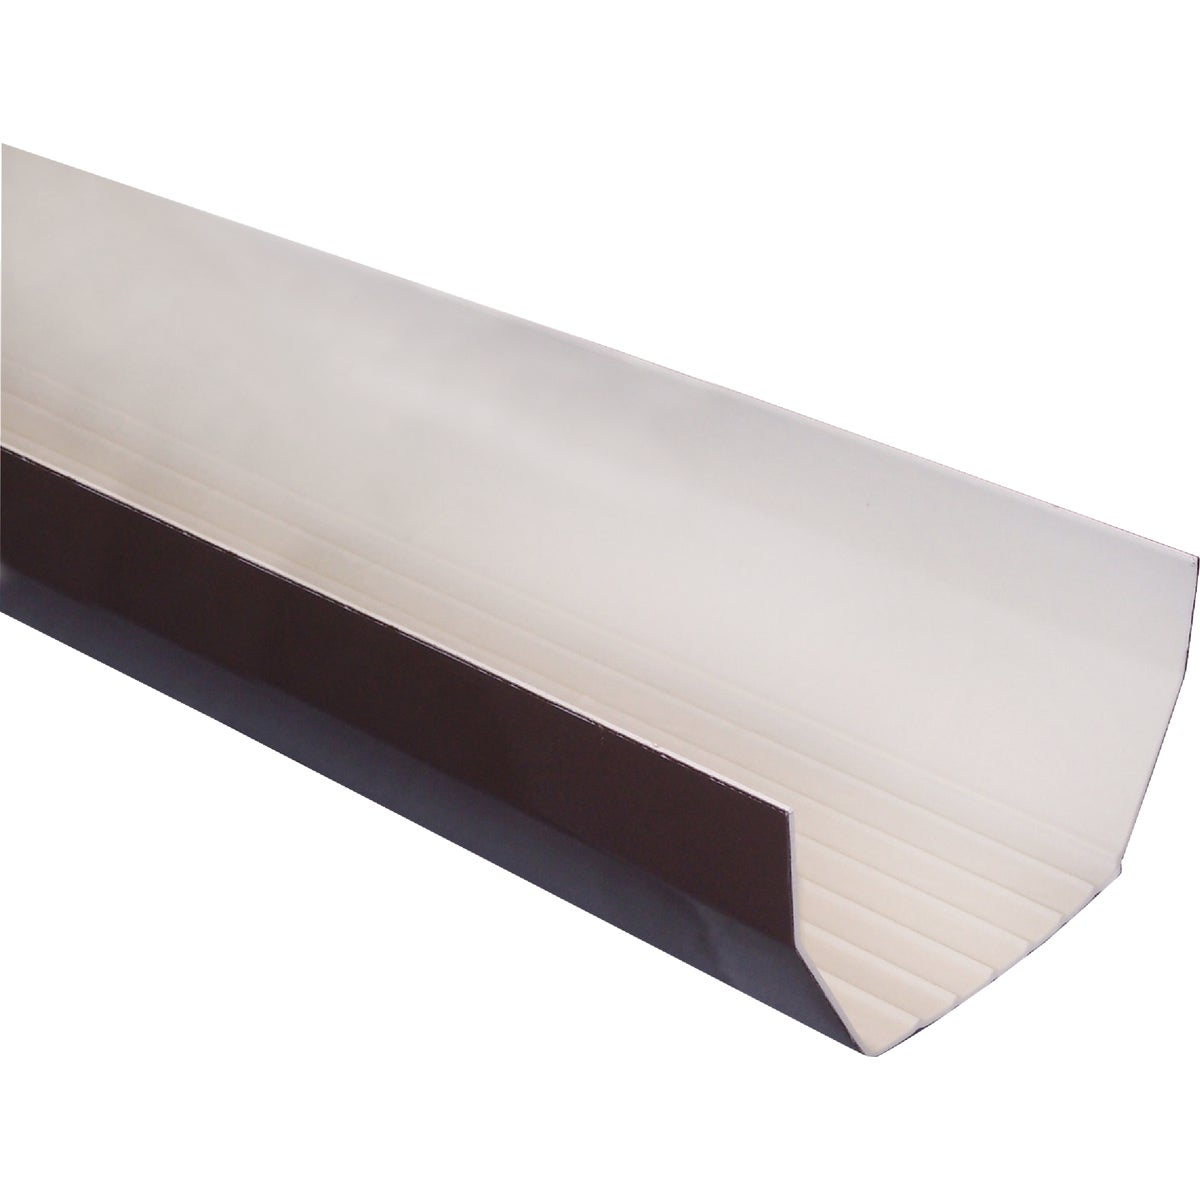 "5"" BRN VINYL GUTTER - RB100 by Genova Products"